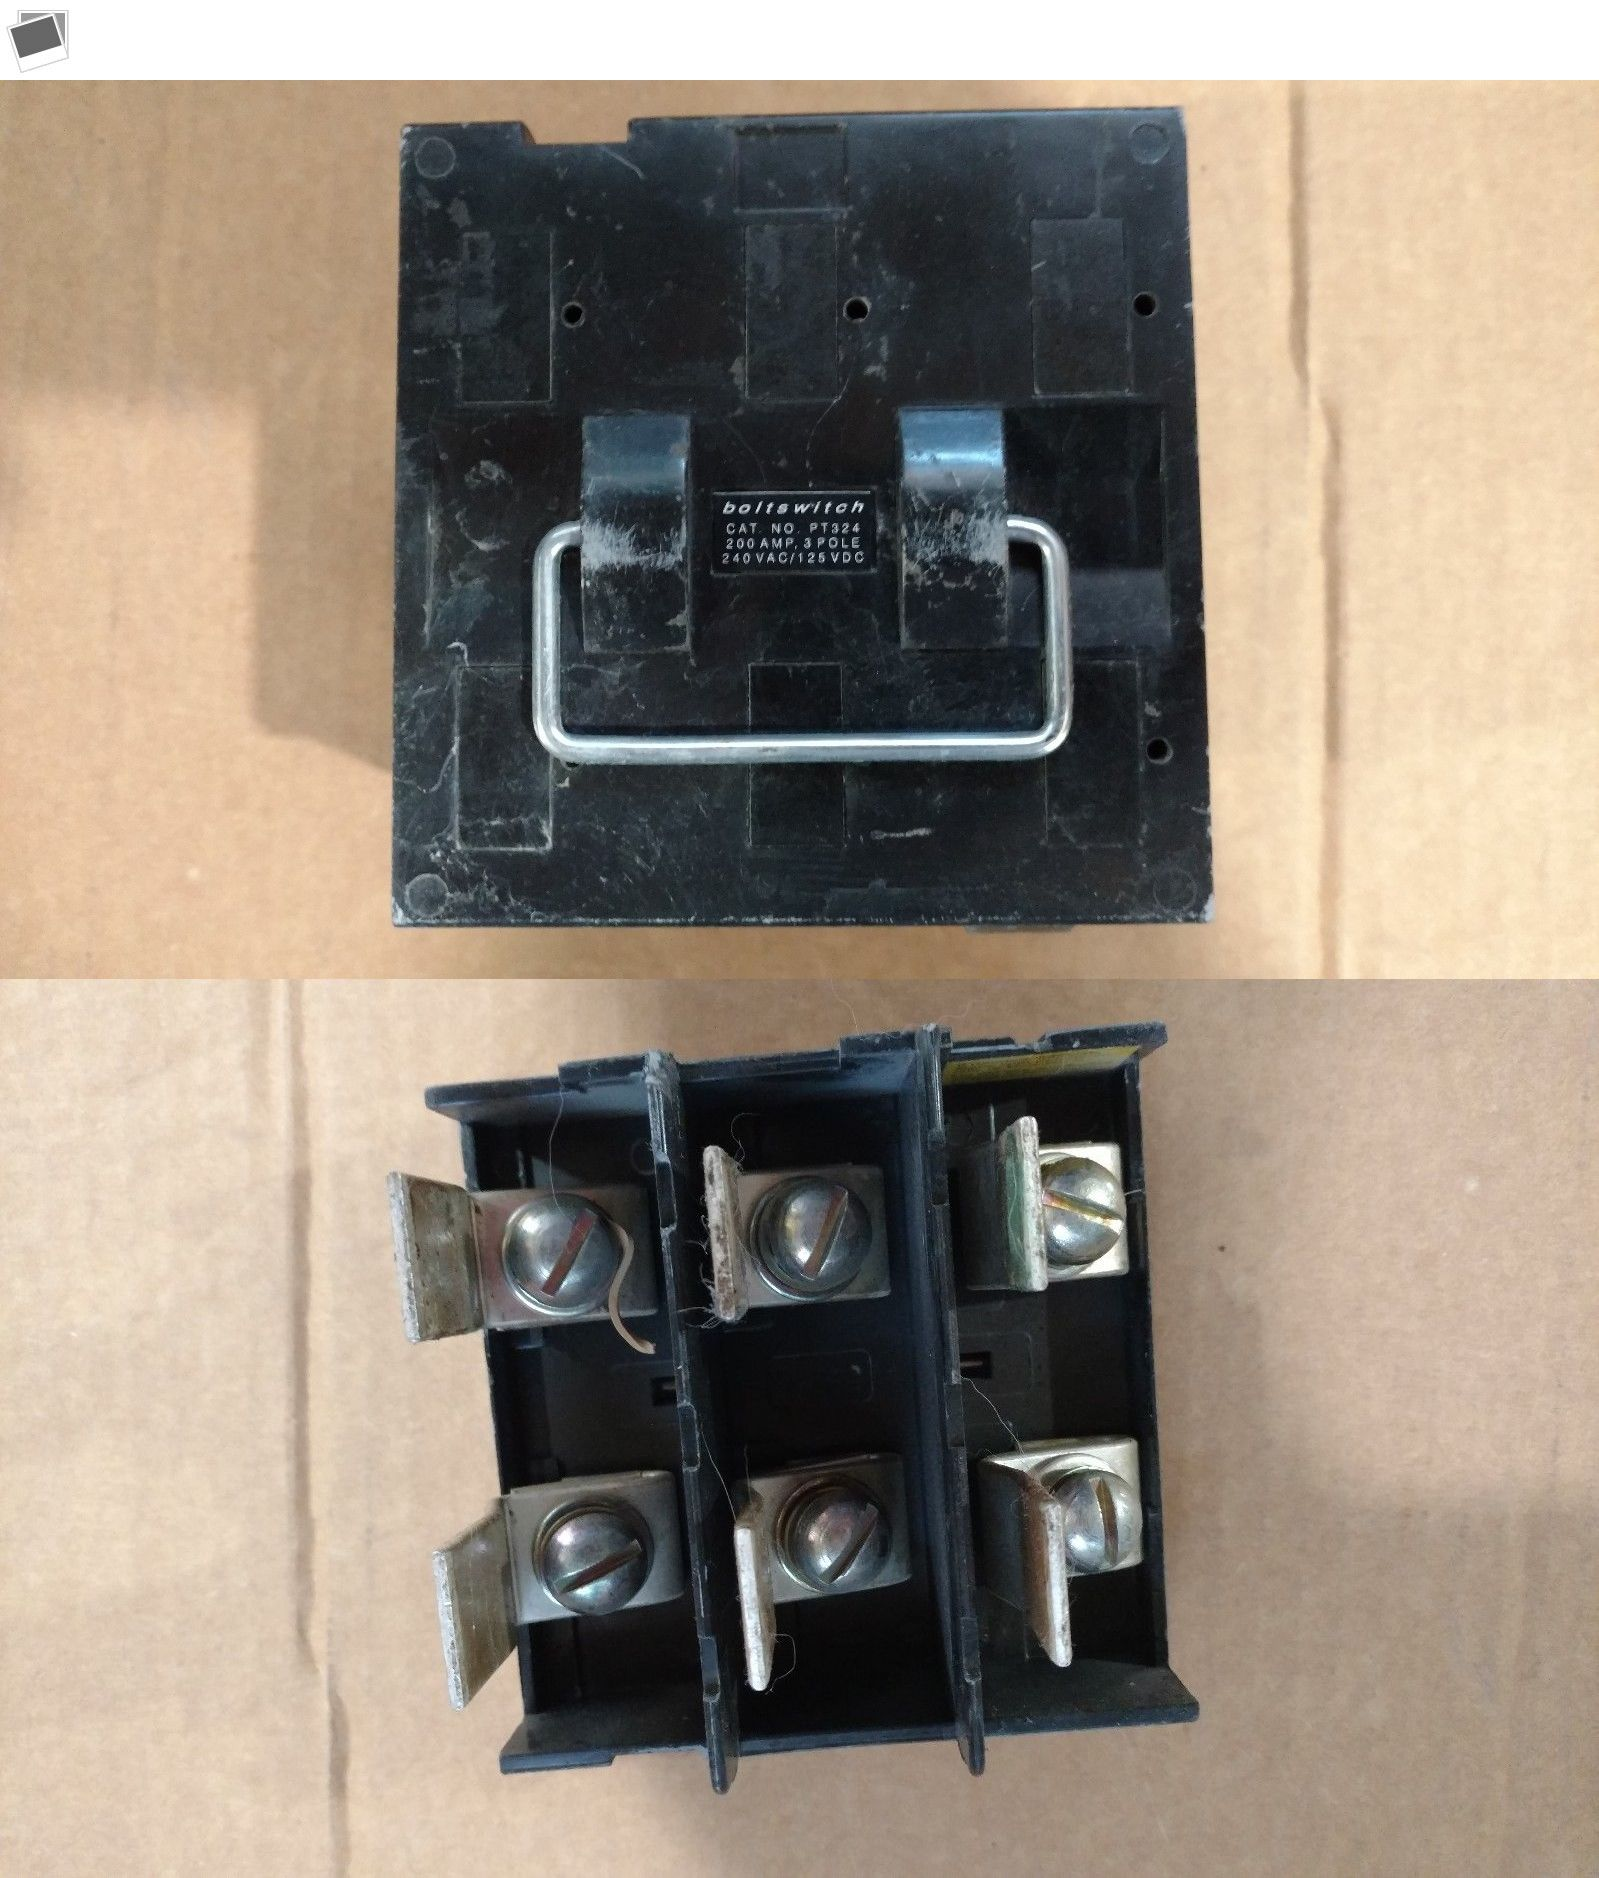 circuit breakers and fuse boxes 20596: boltswitch #pt324 fusable pull out  (pullout section only). . free shipping -> buy it now onl… | fuse box,  stuff to buy, fuses  pinterest